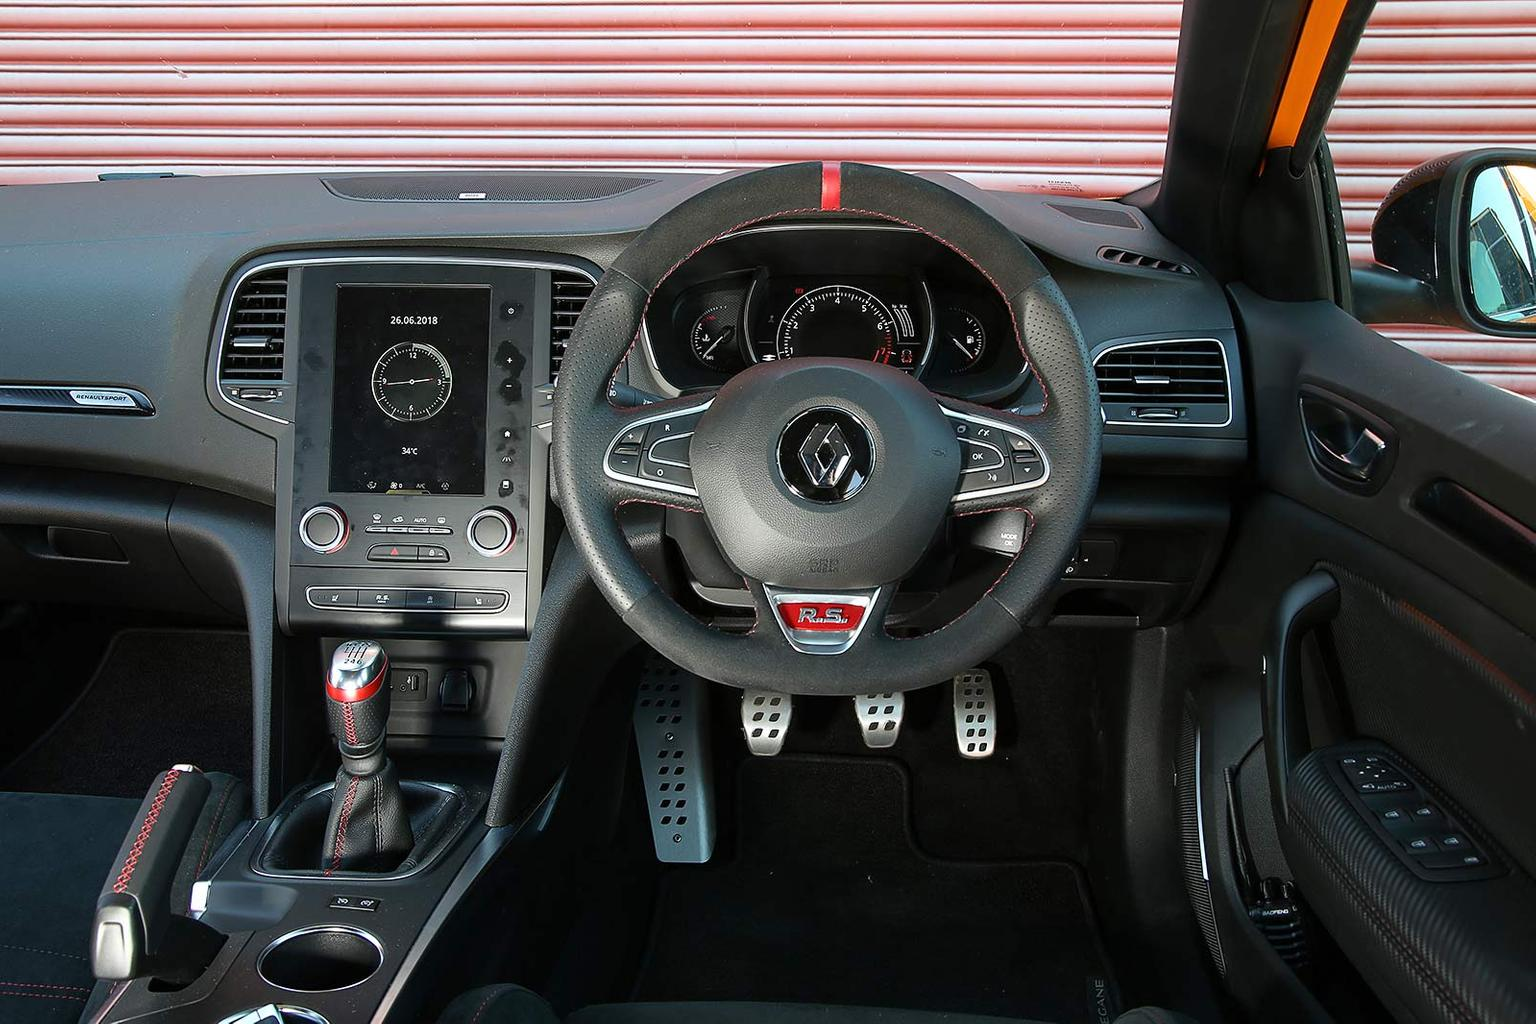 2018 Renault Megane RS 280 Cup review - price, specs and release date